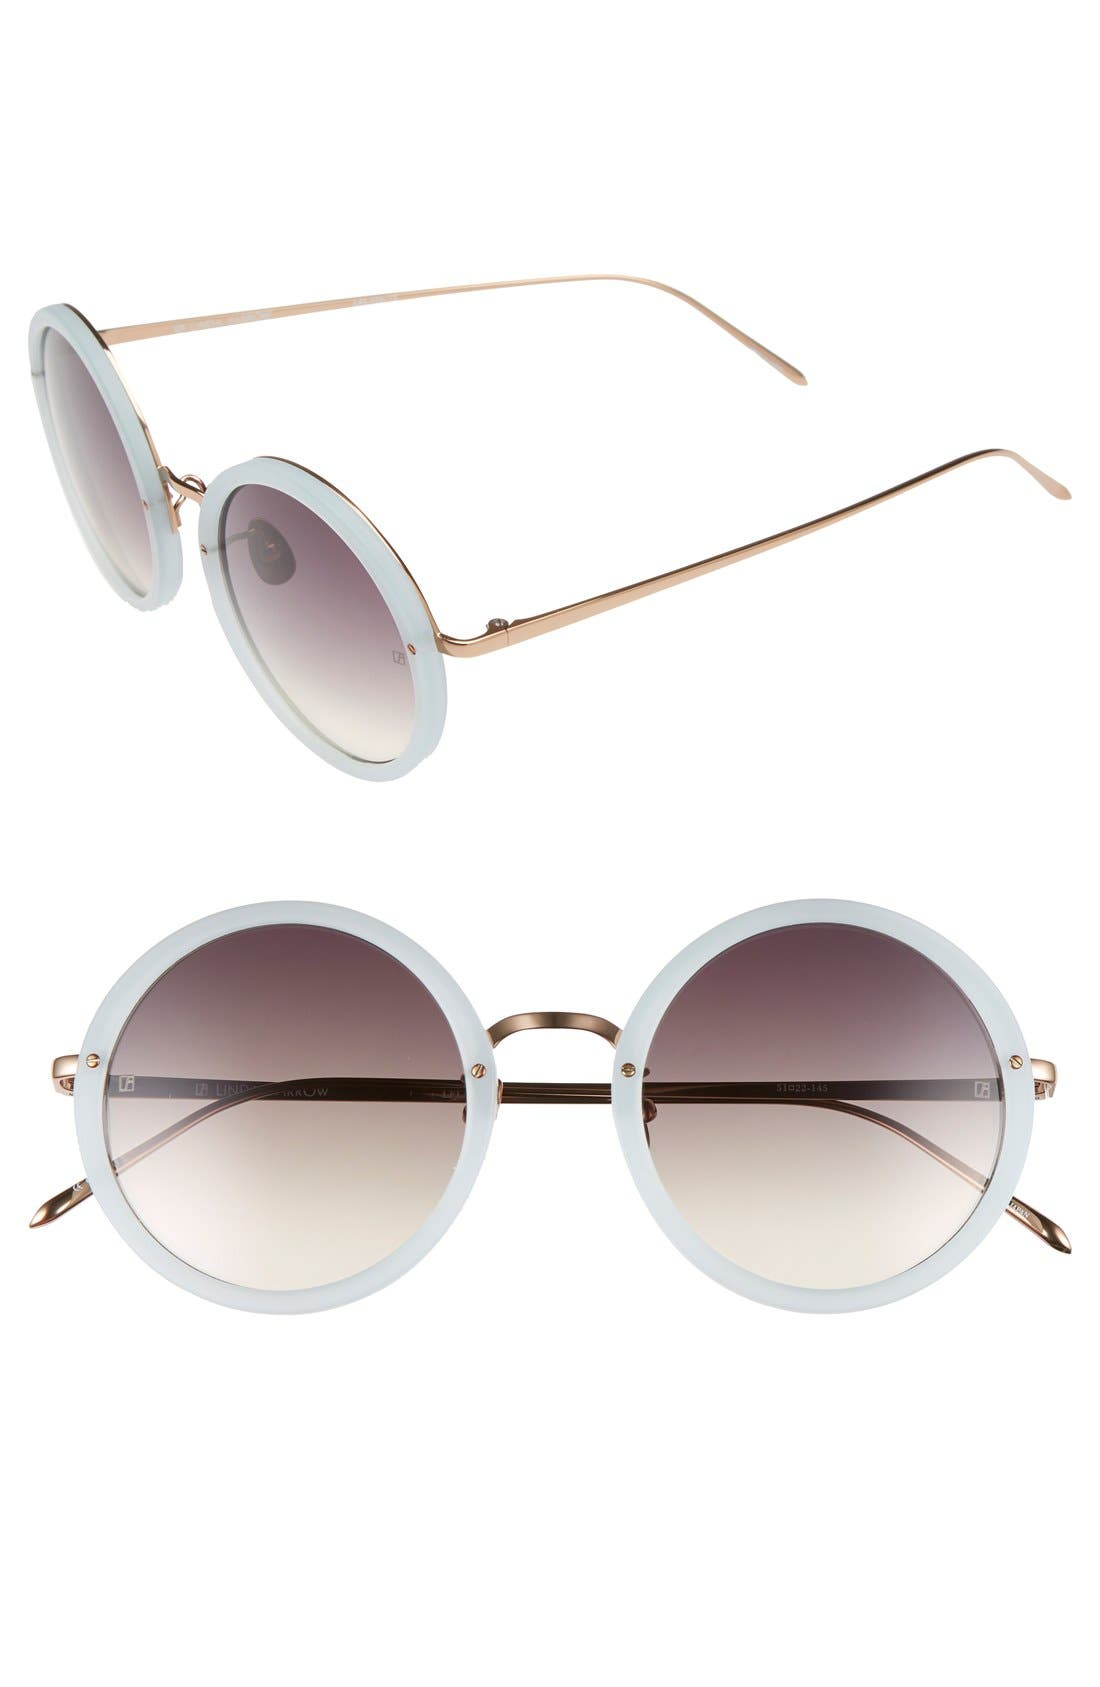 51mm Round 18 Karat Rose Gold Sunglasses,                         Main,                         color, Iris/ Grey Grad